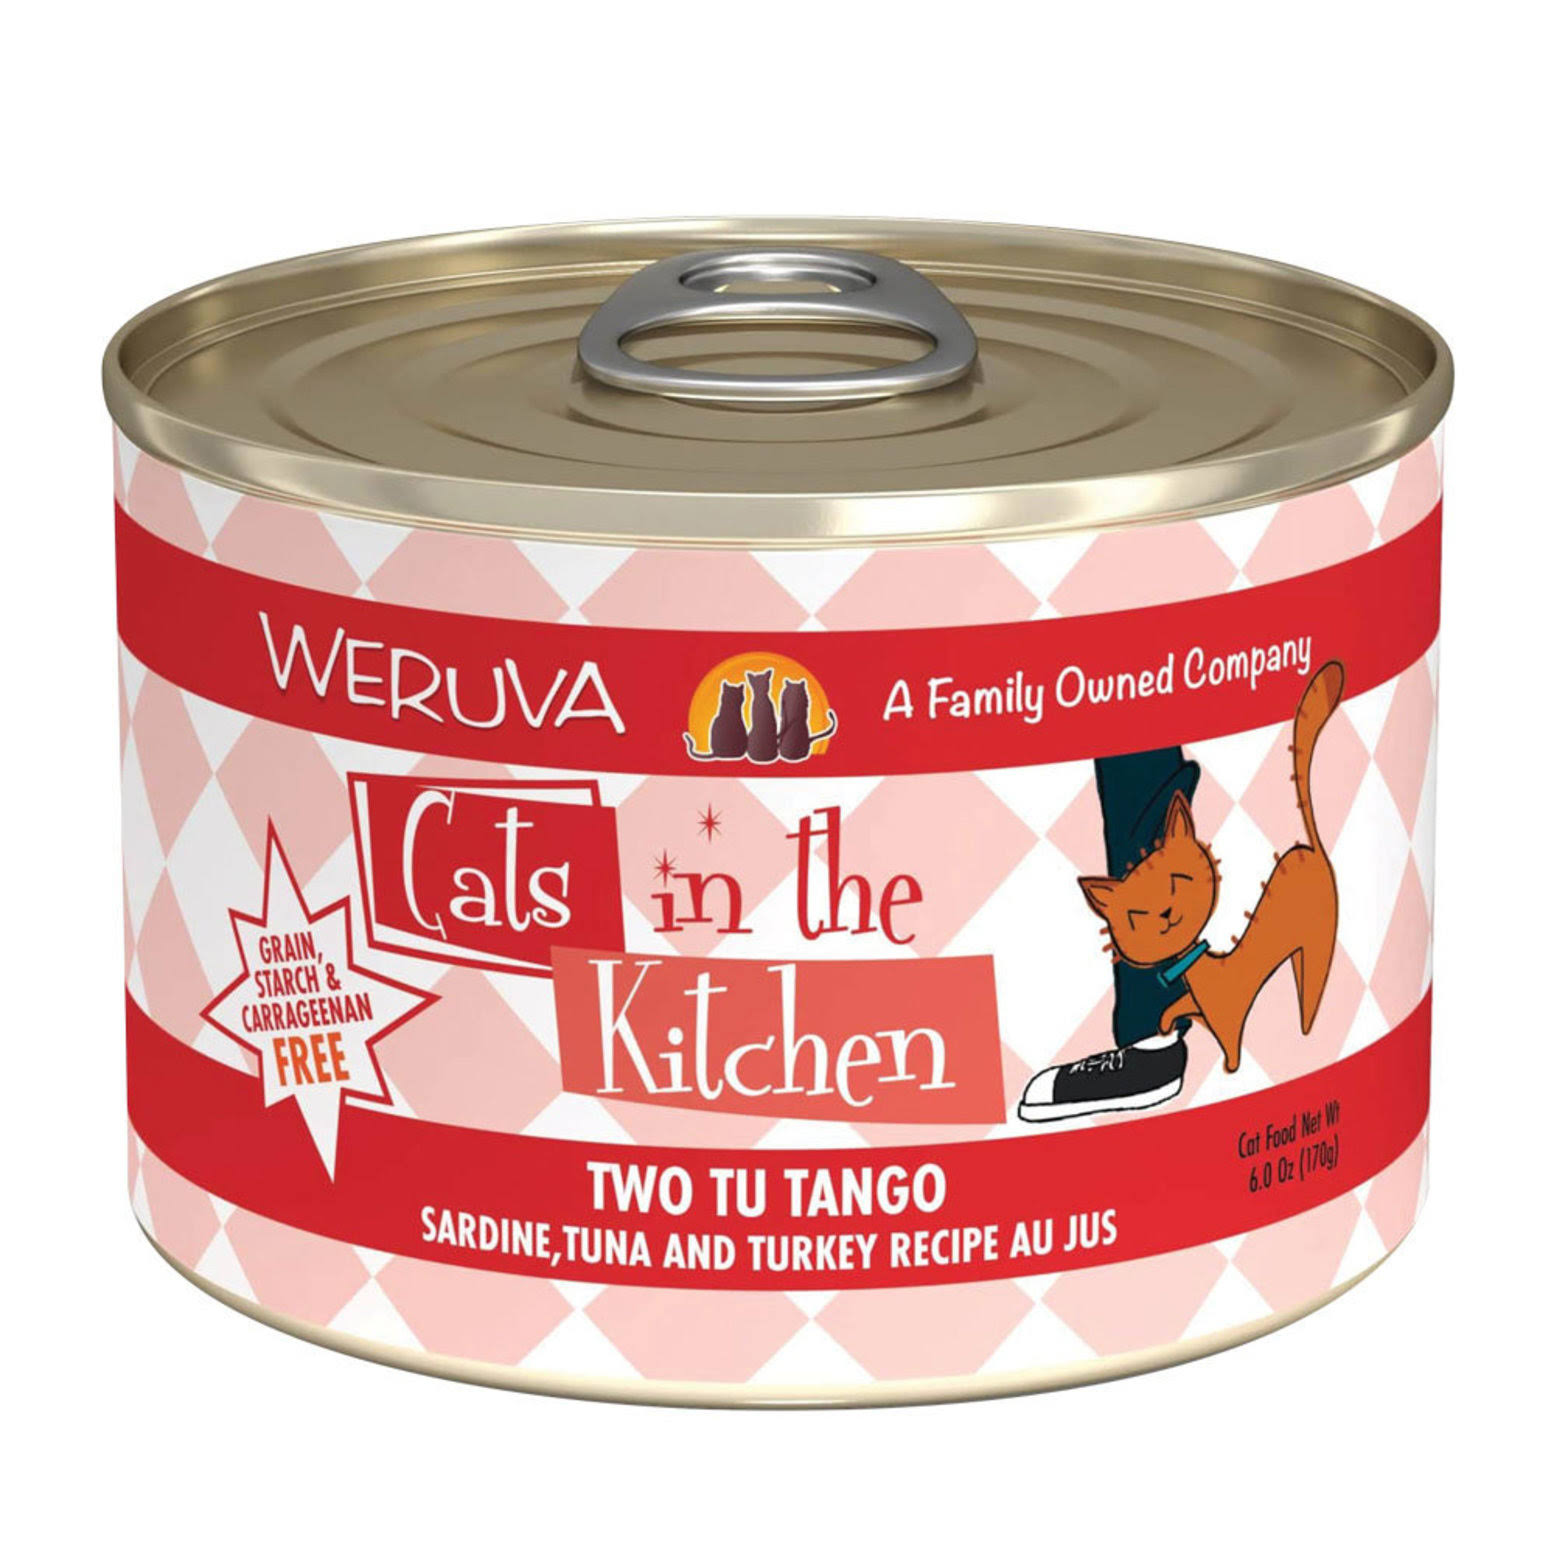 Weruva Cats in The Kitchen Two Tu Tango - 6 oz.